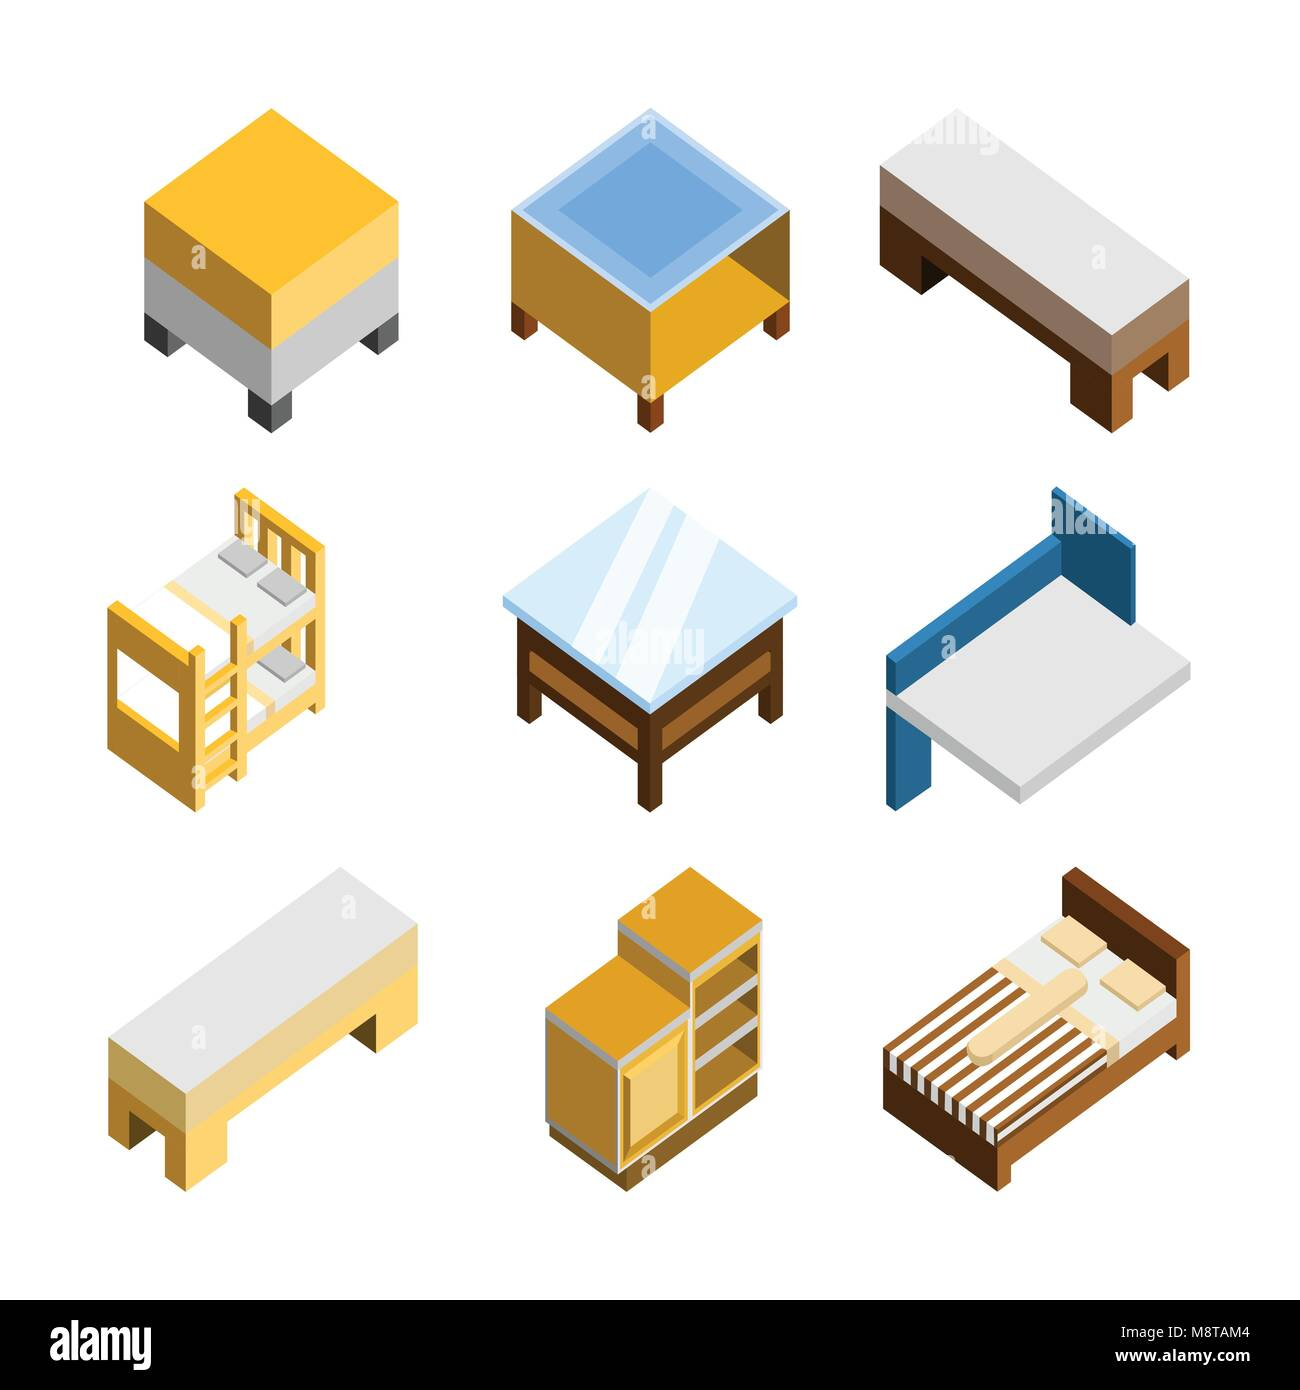 3D Isometric Home Furniture Vector Illustration Graphic Design Set Stock Vector